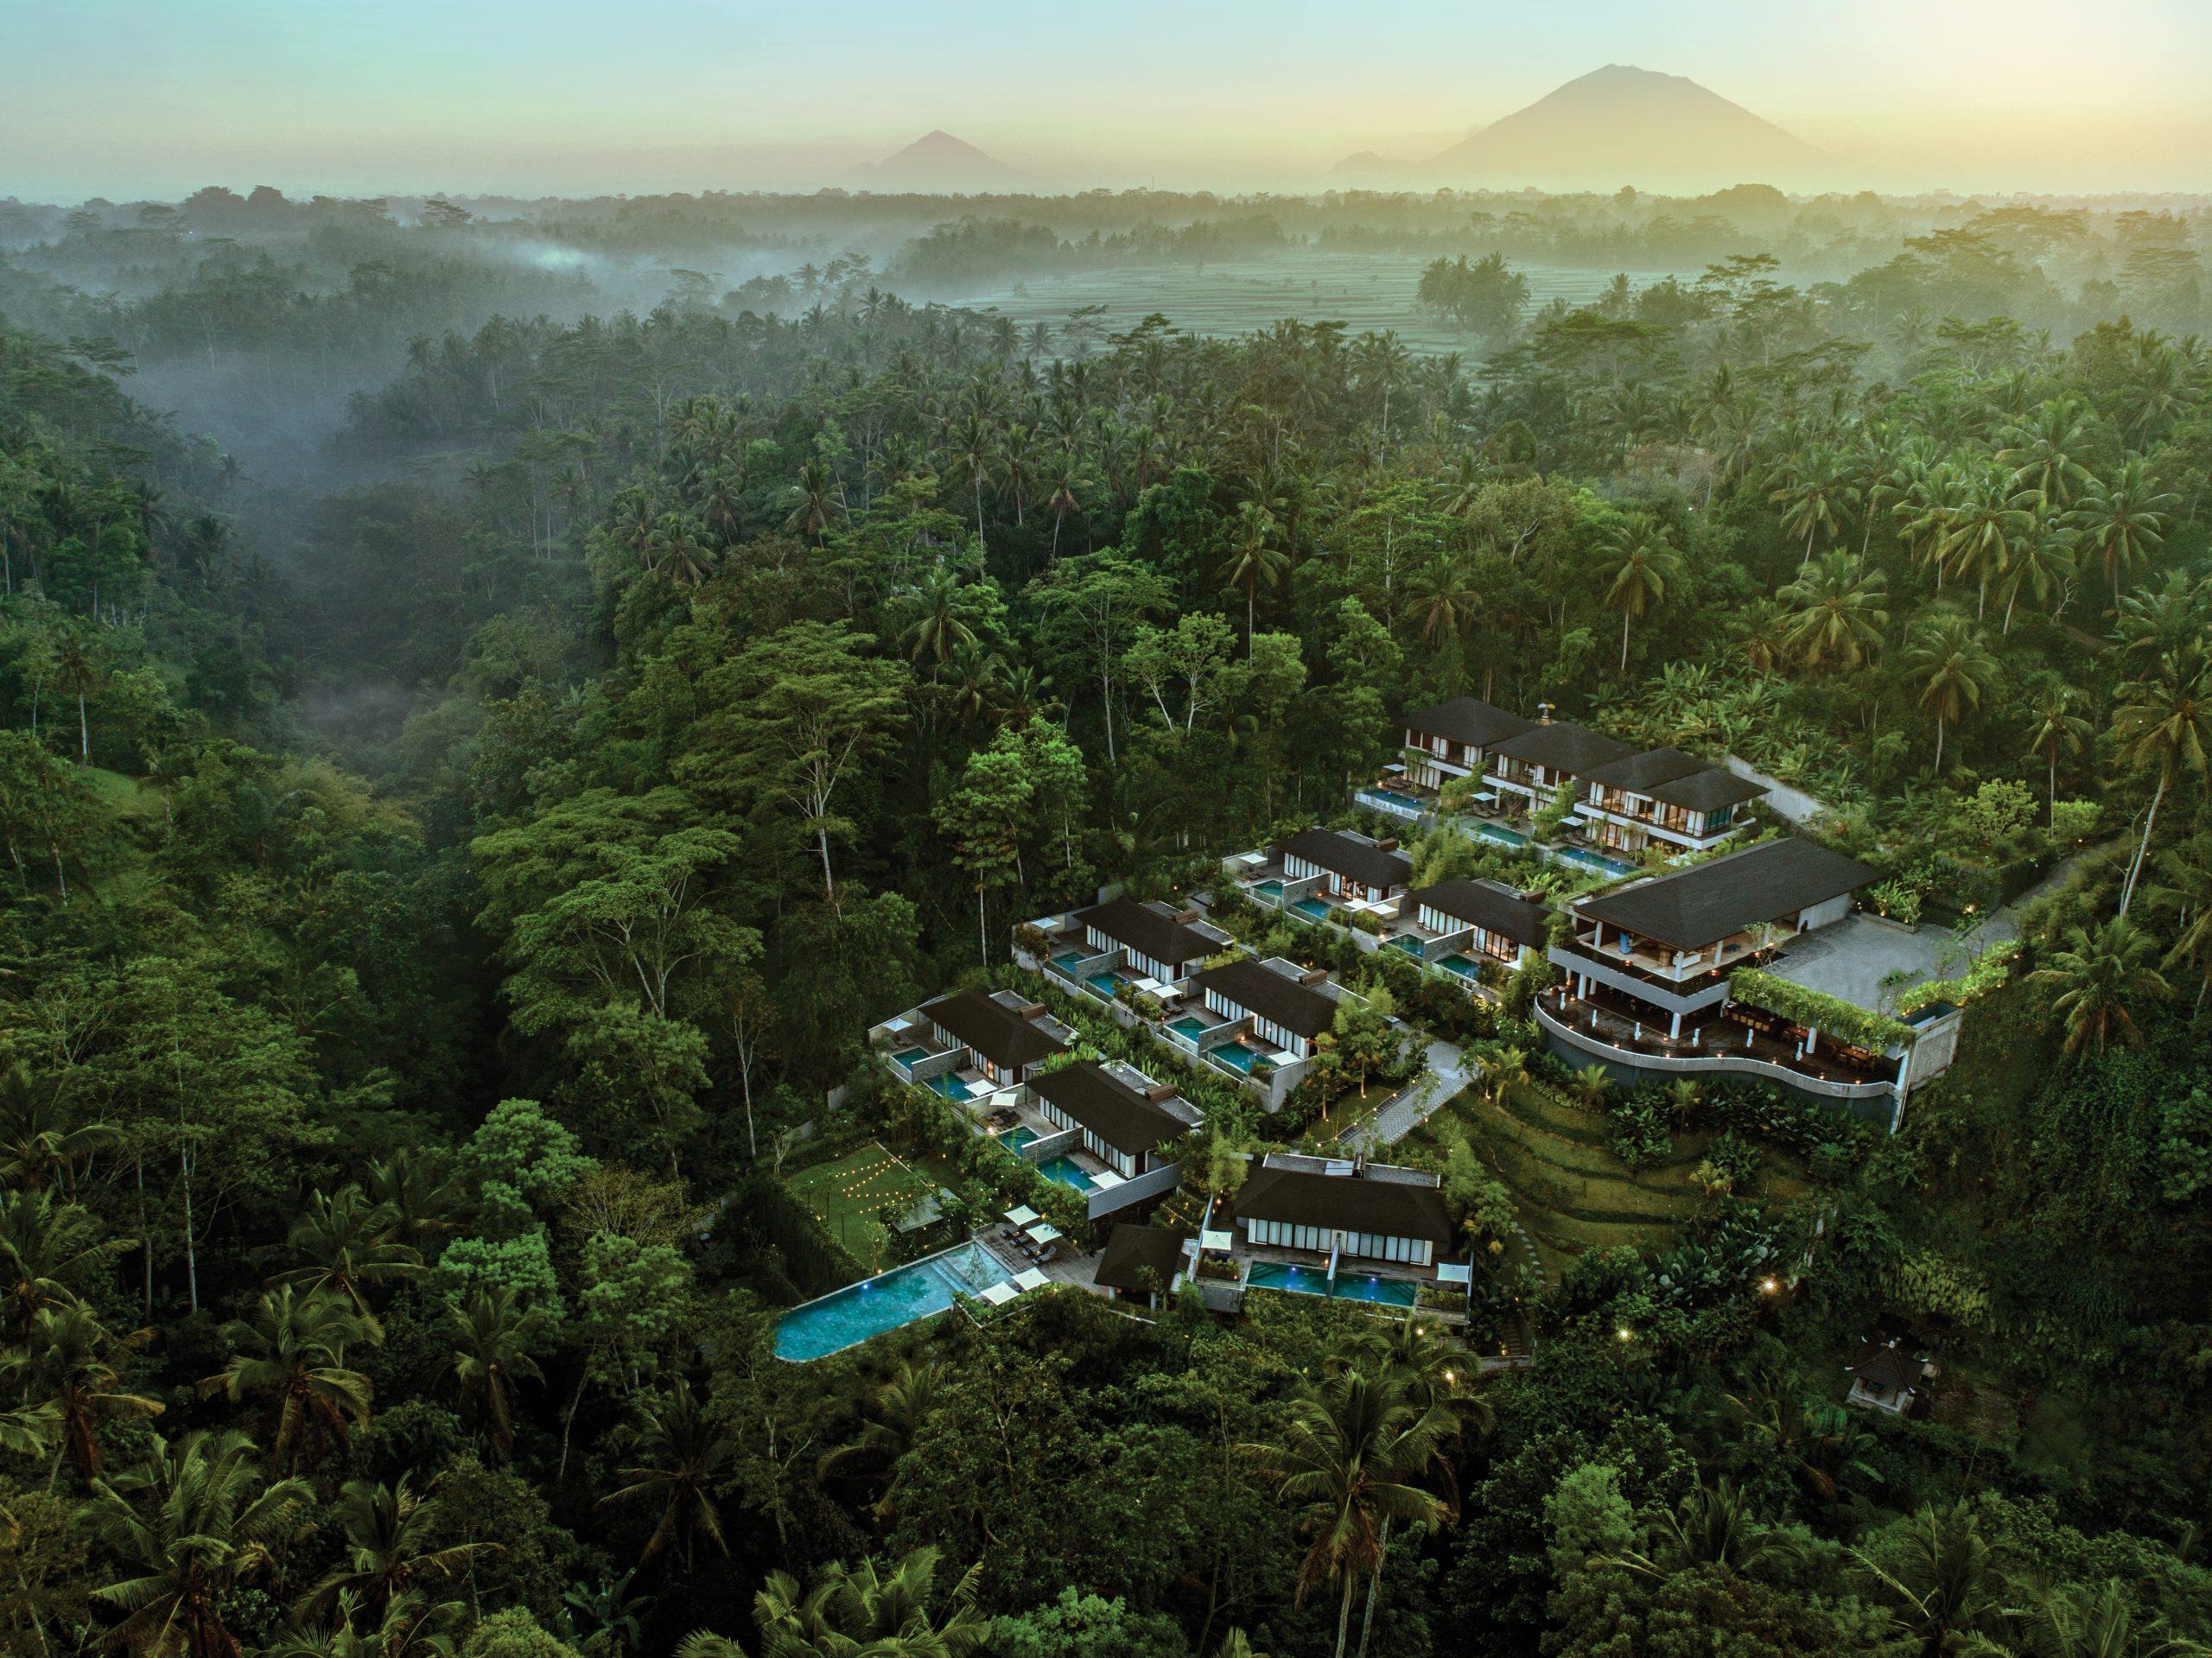 http://highend-traveller.com/healing-at-your-leisure-package-for-clarity-within-yourself-at-samsara-ubud-reset-reflect-and-reconnect/